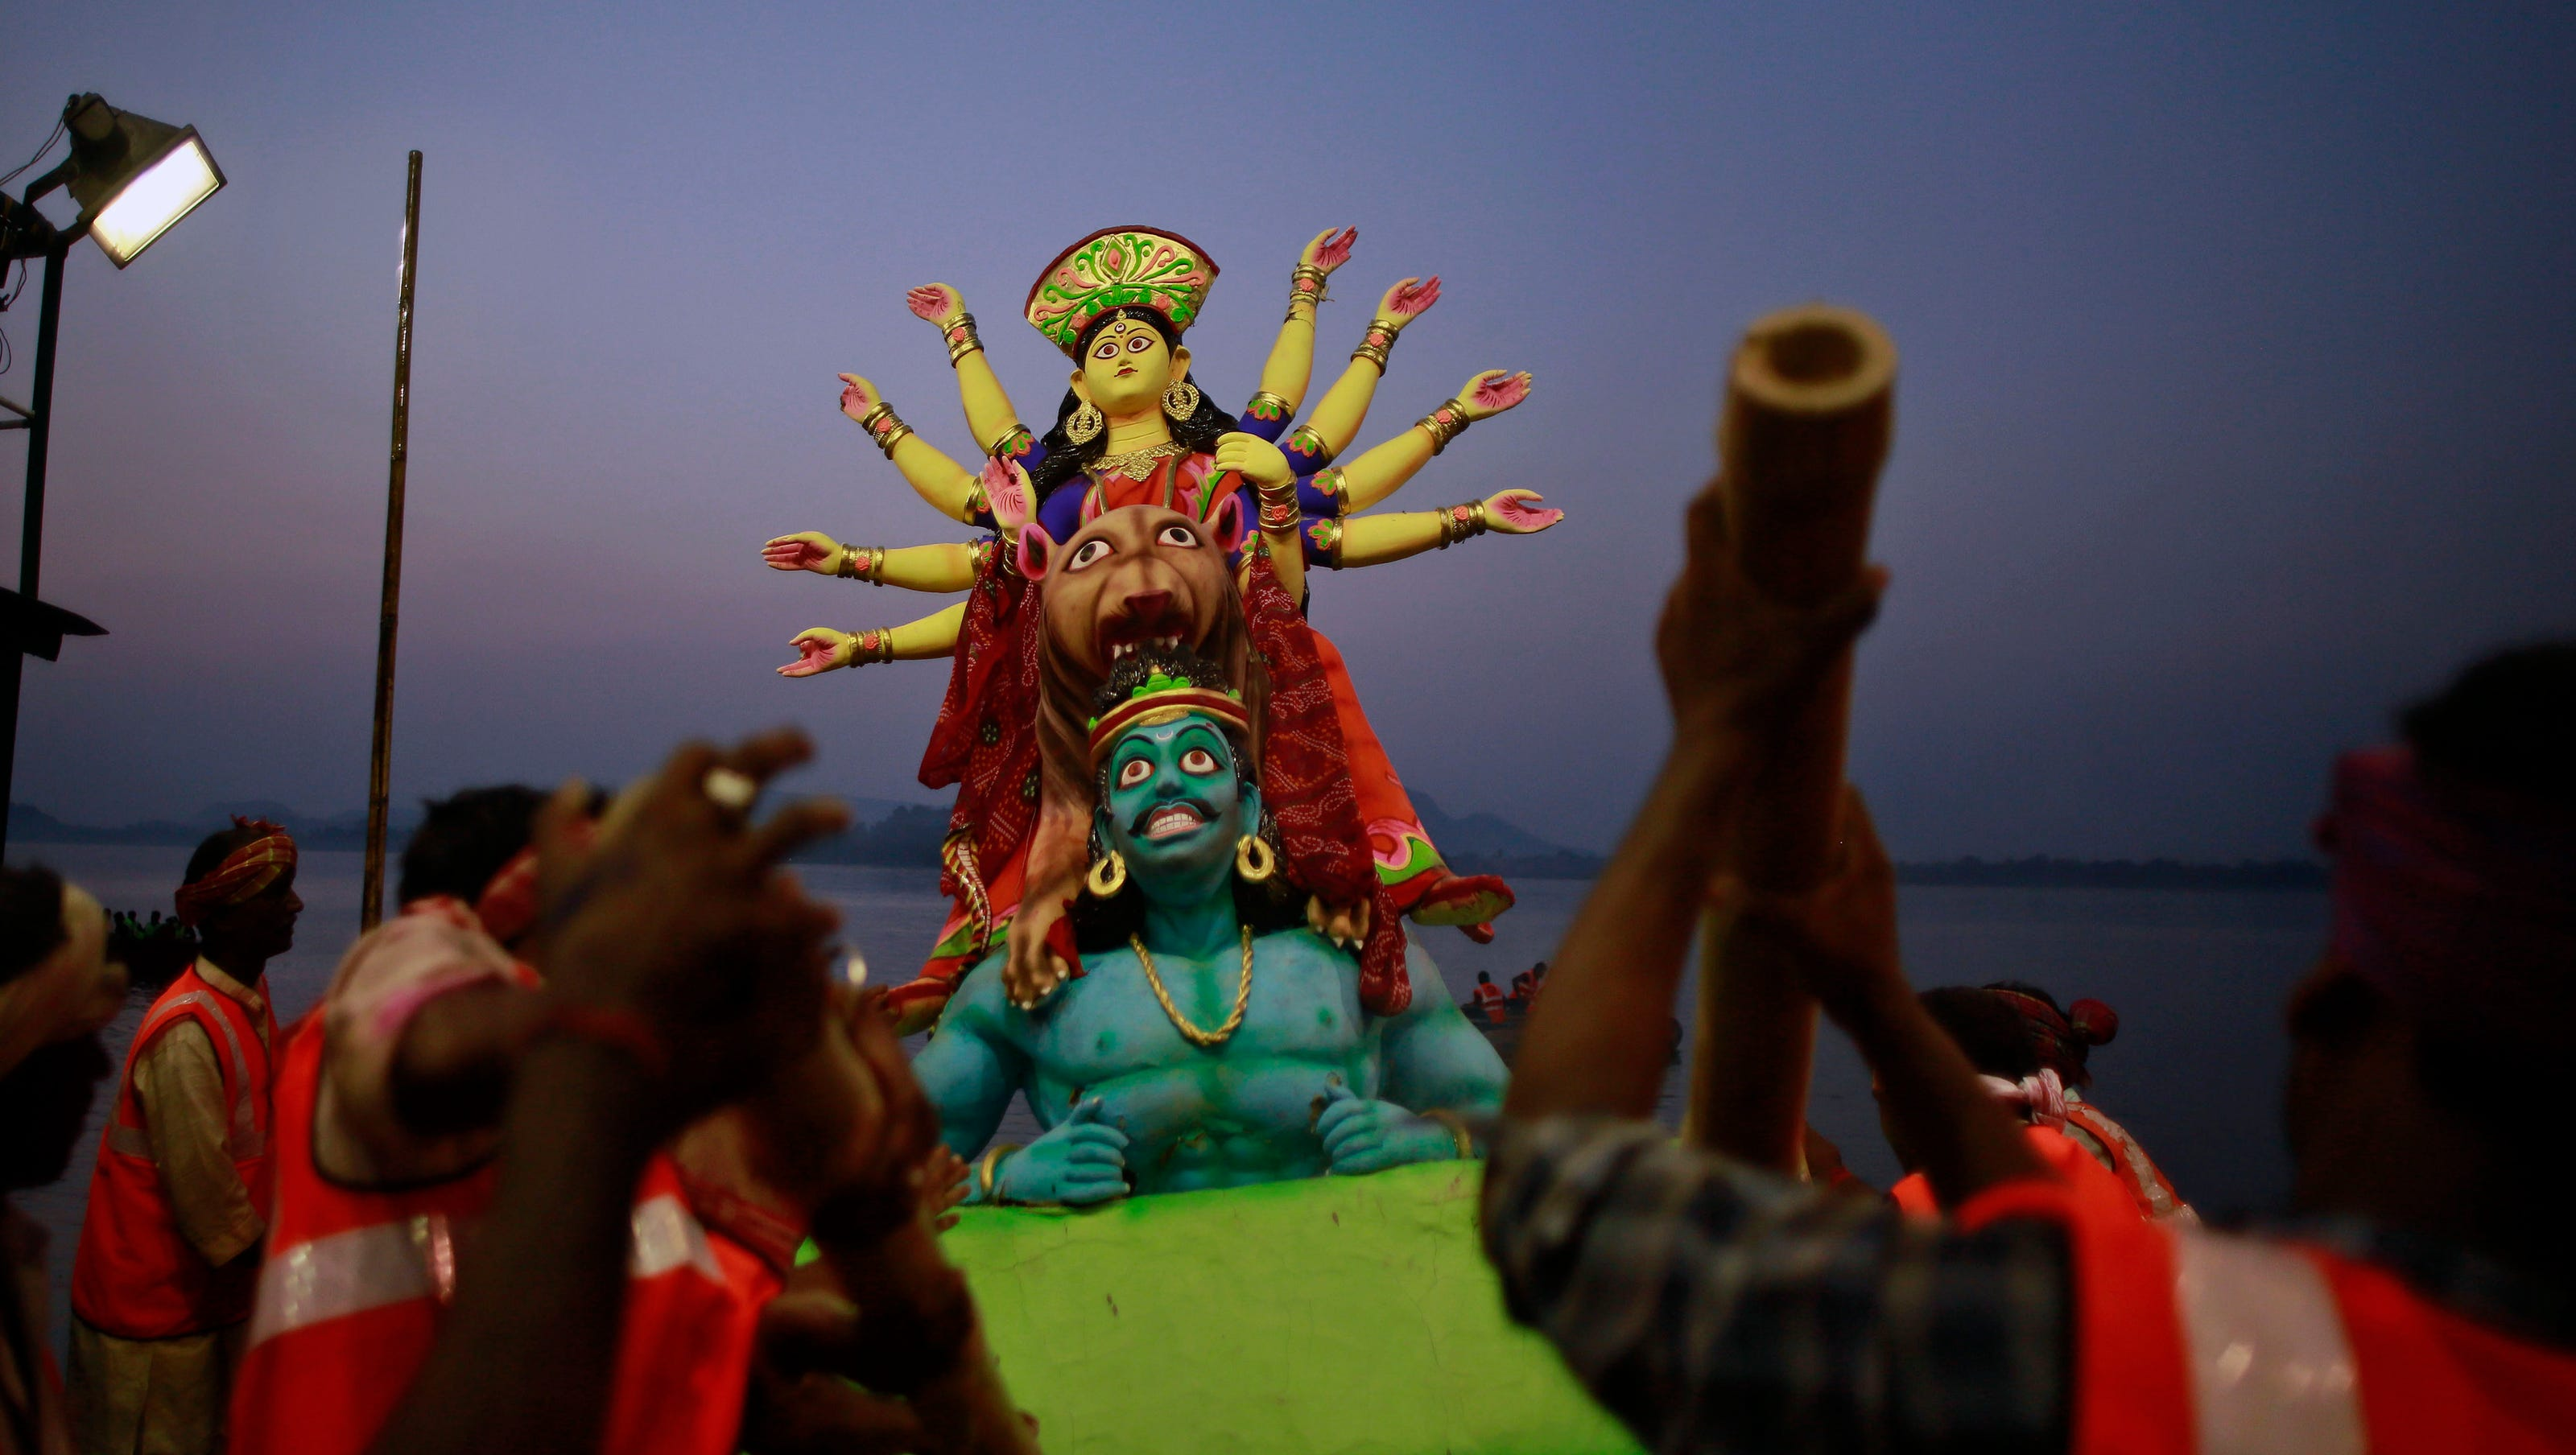 8limbed god baby draws crowds in india